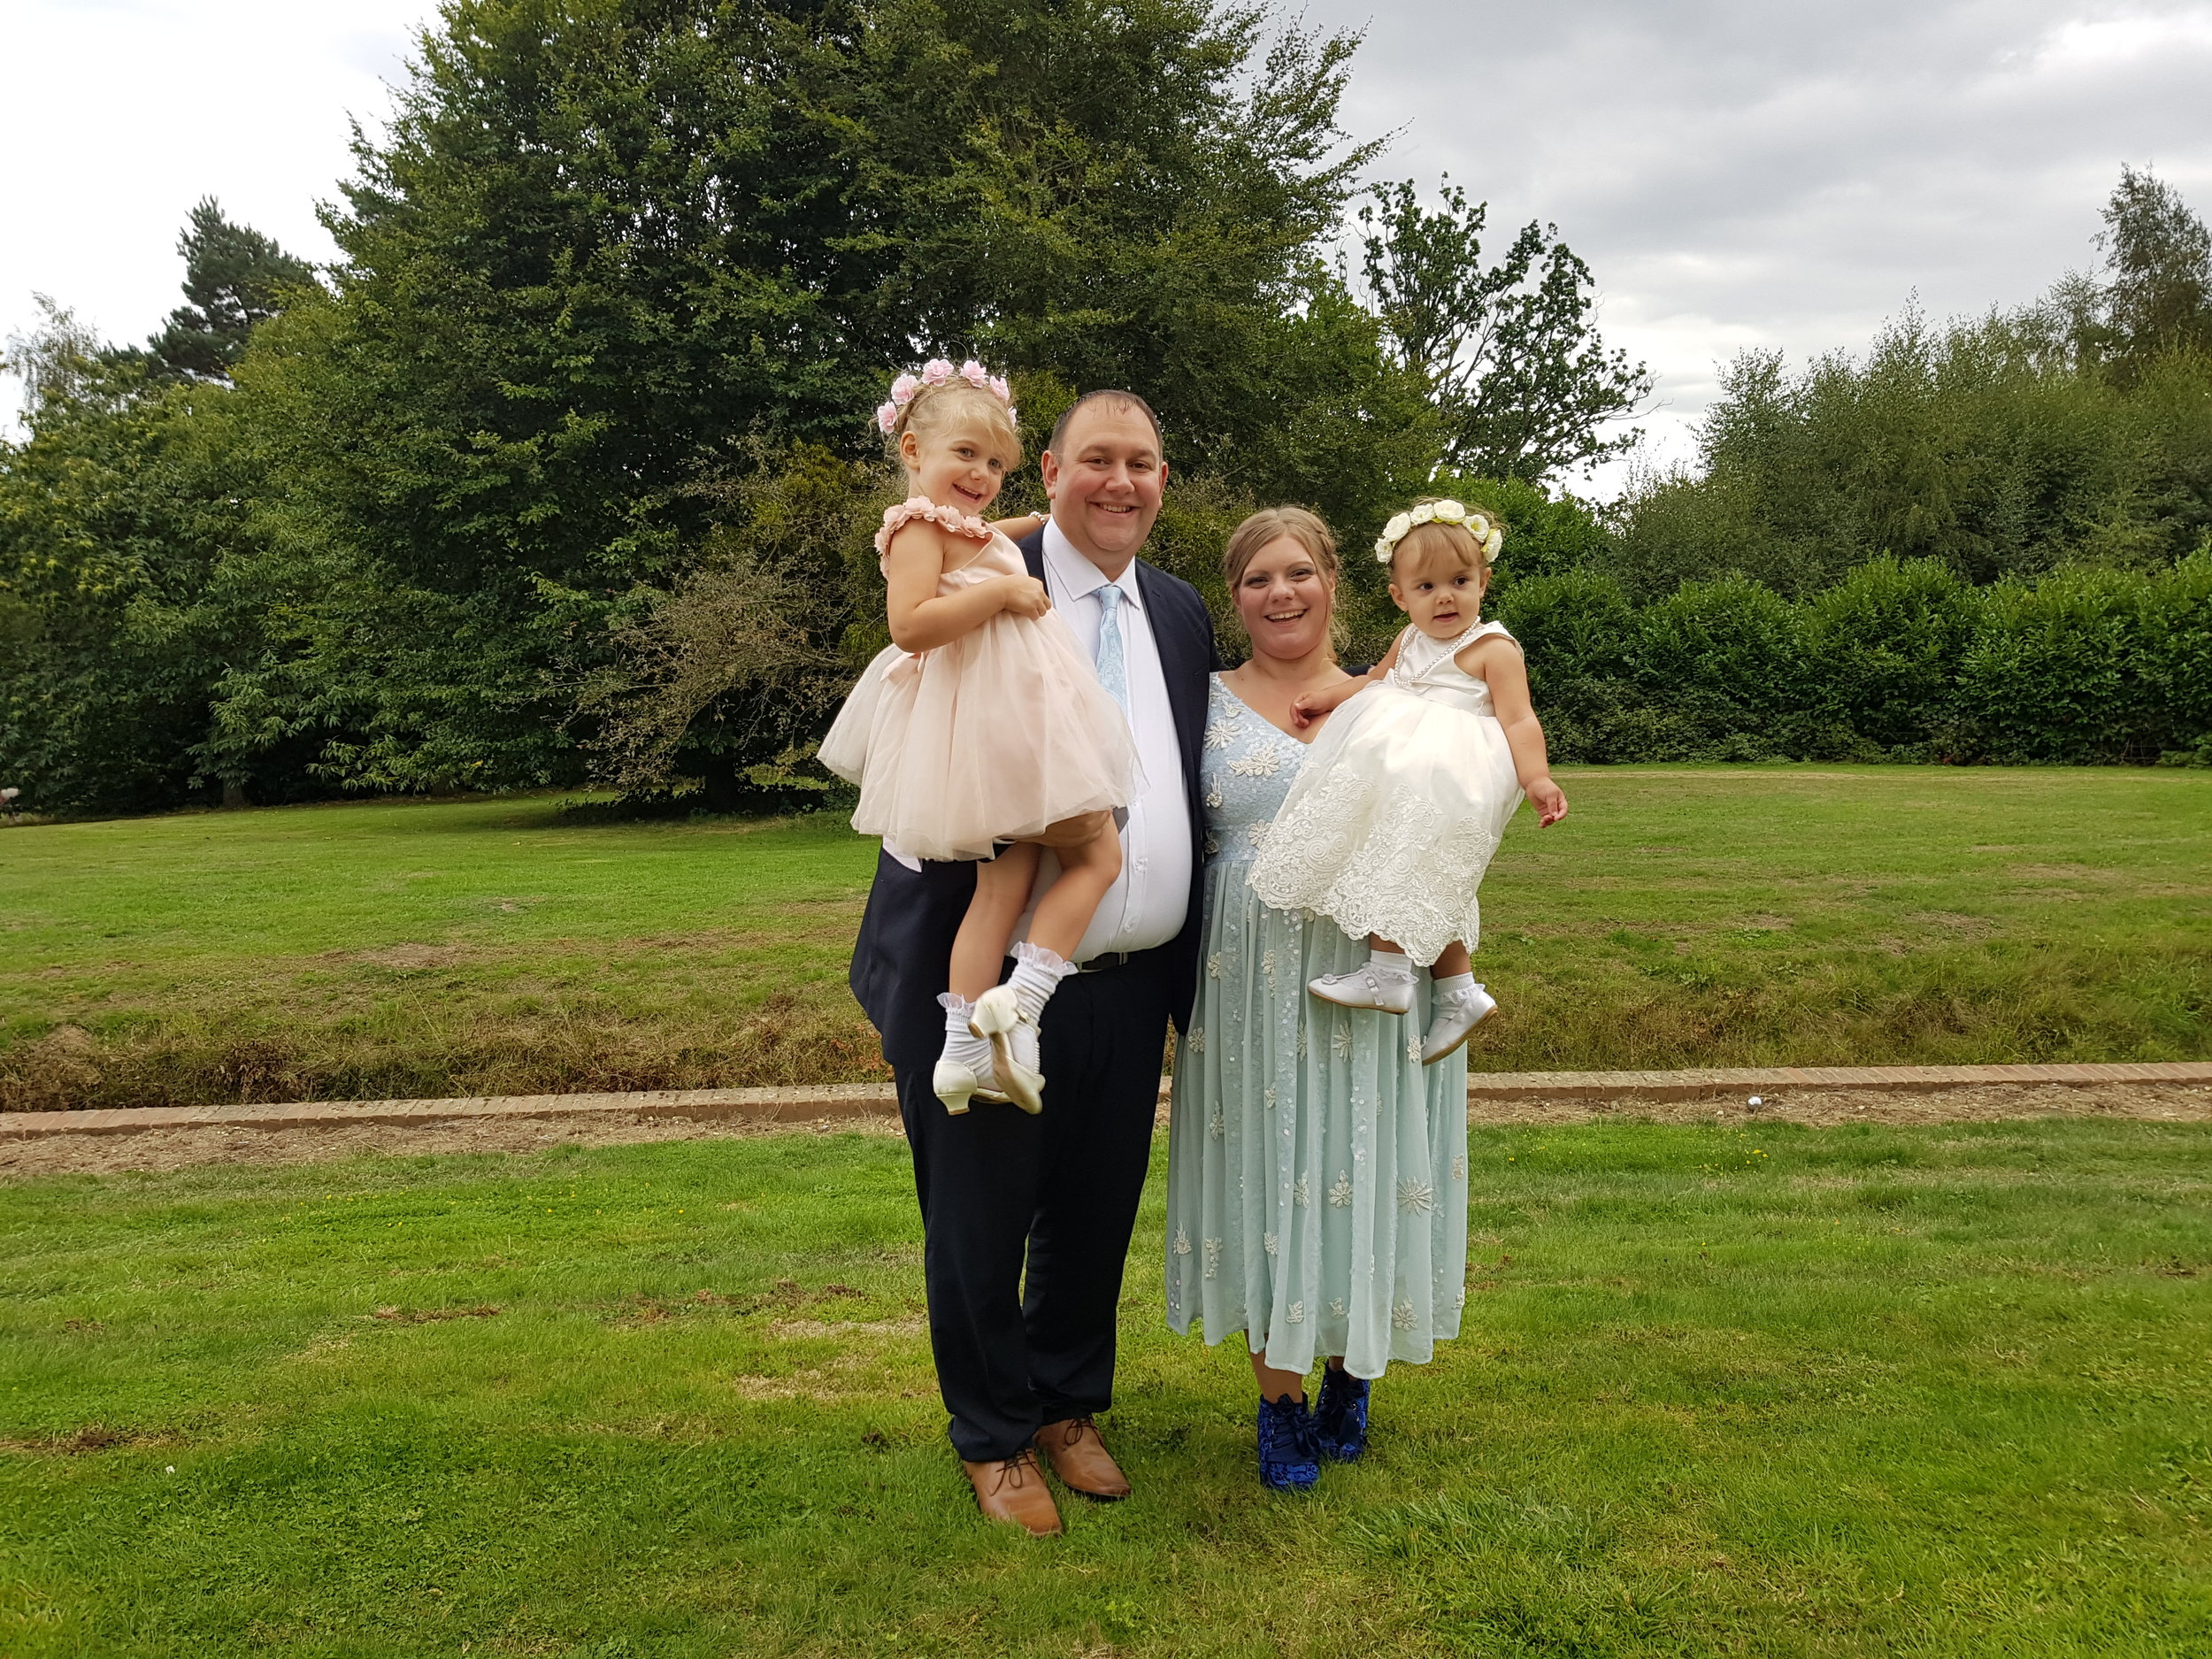 Wedding photo ideas: family photos at the wedding venue